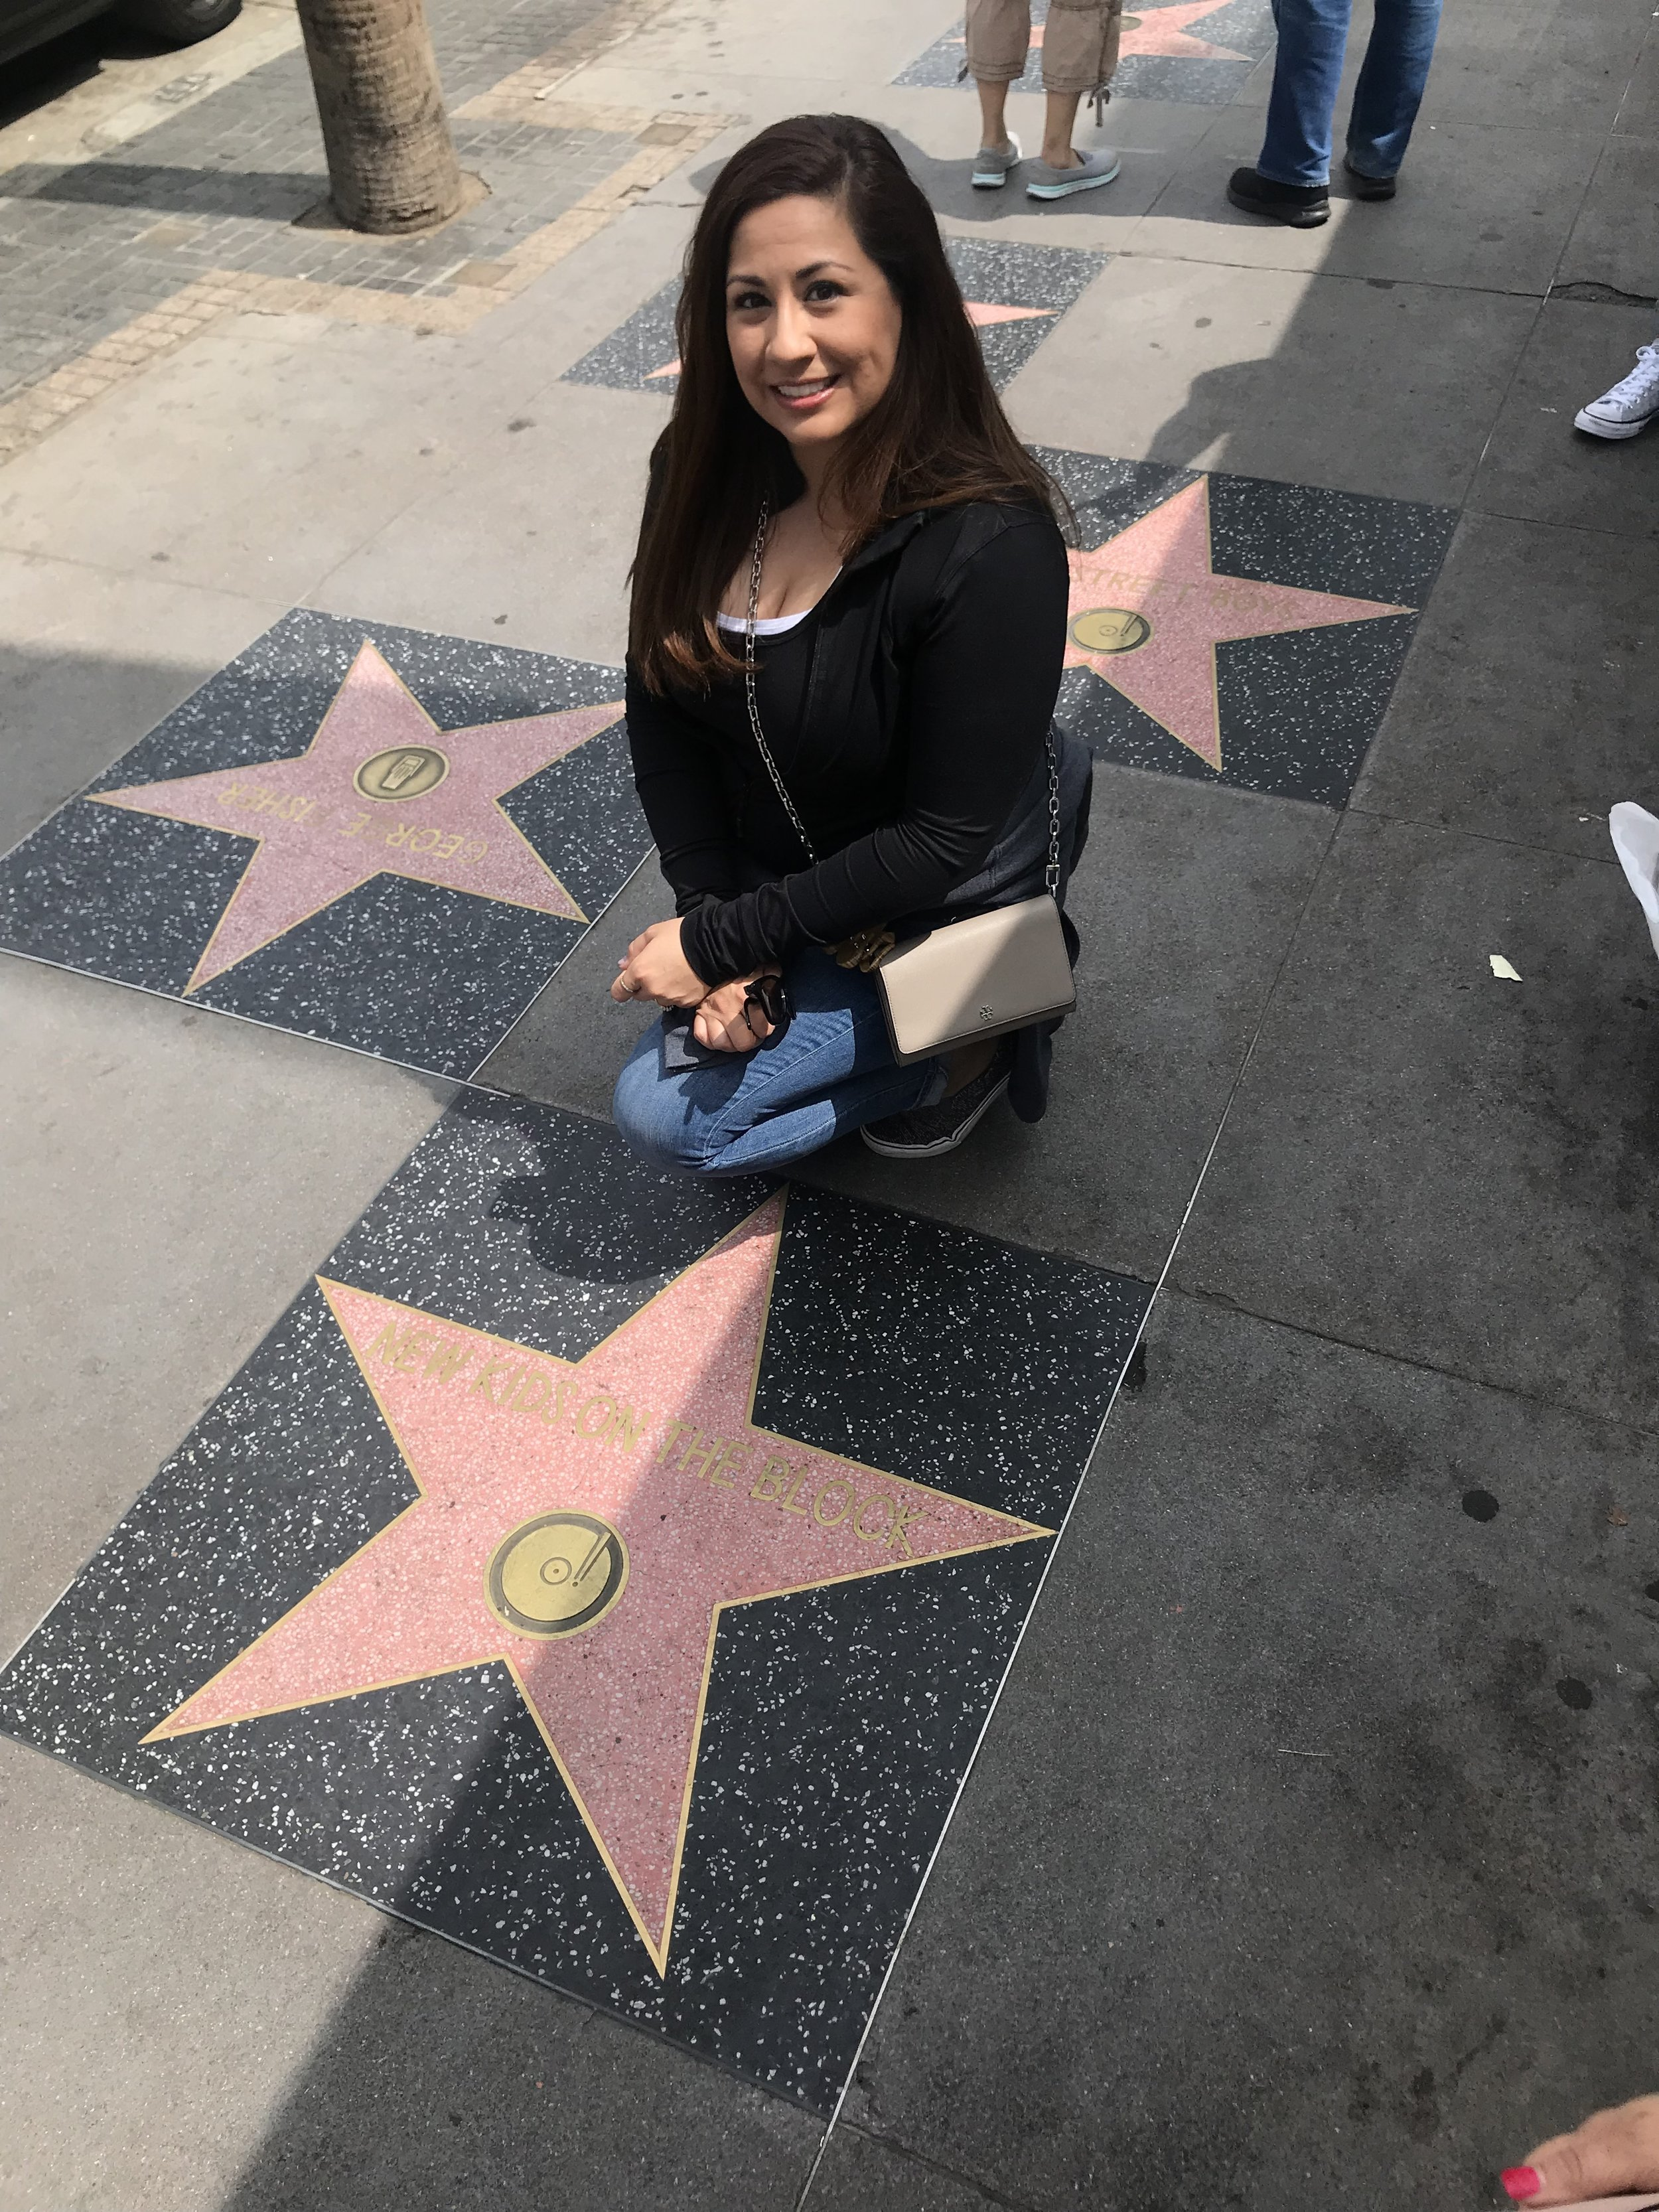 Jenny and the New Kids on the Block Star at the Hollywood Walk of Fame (Photo by Jenny)